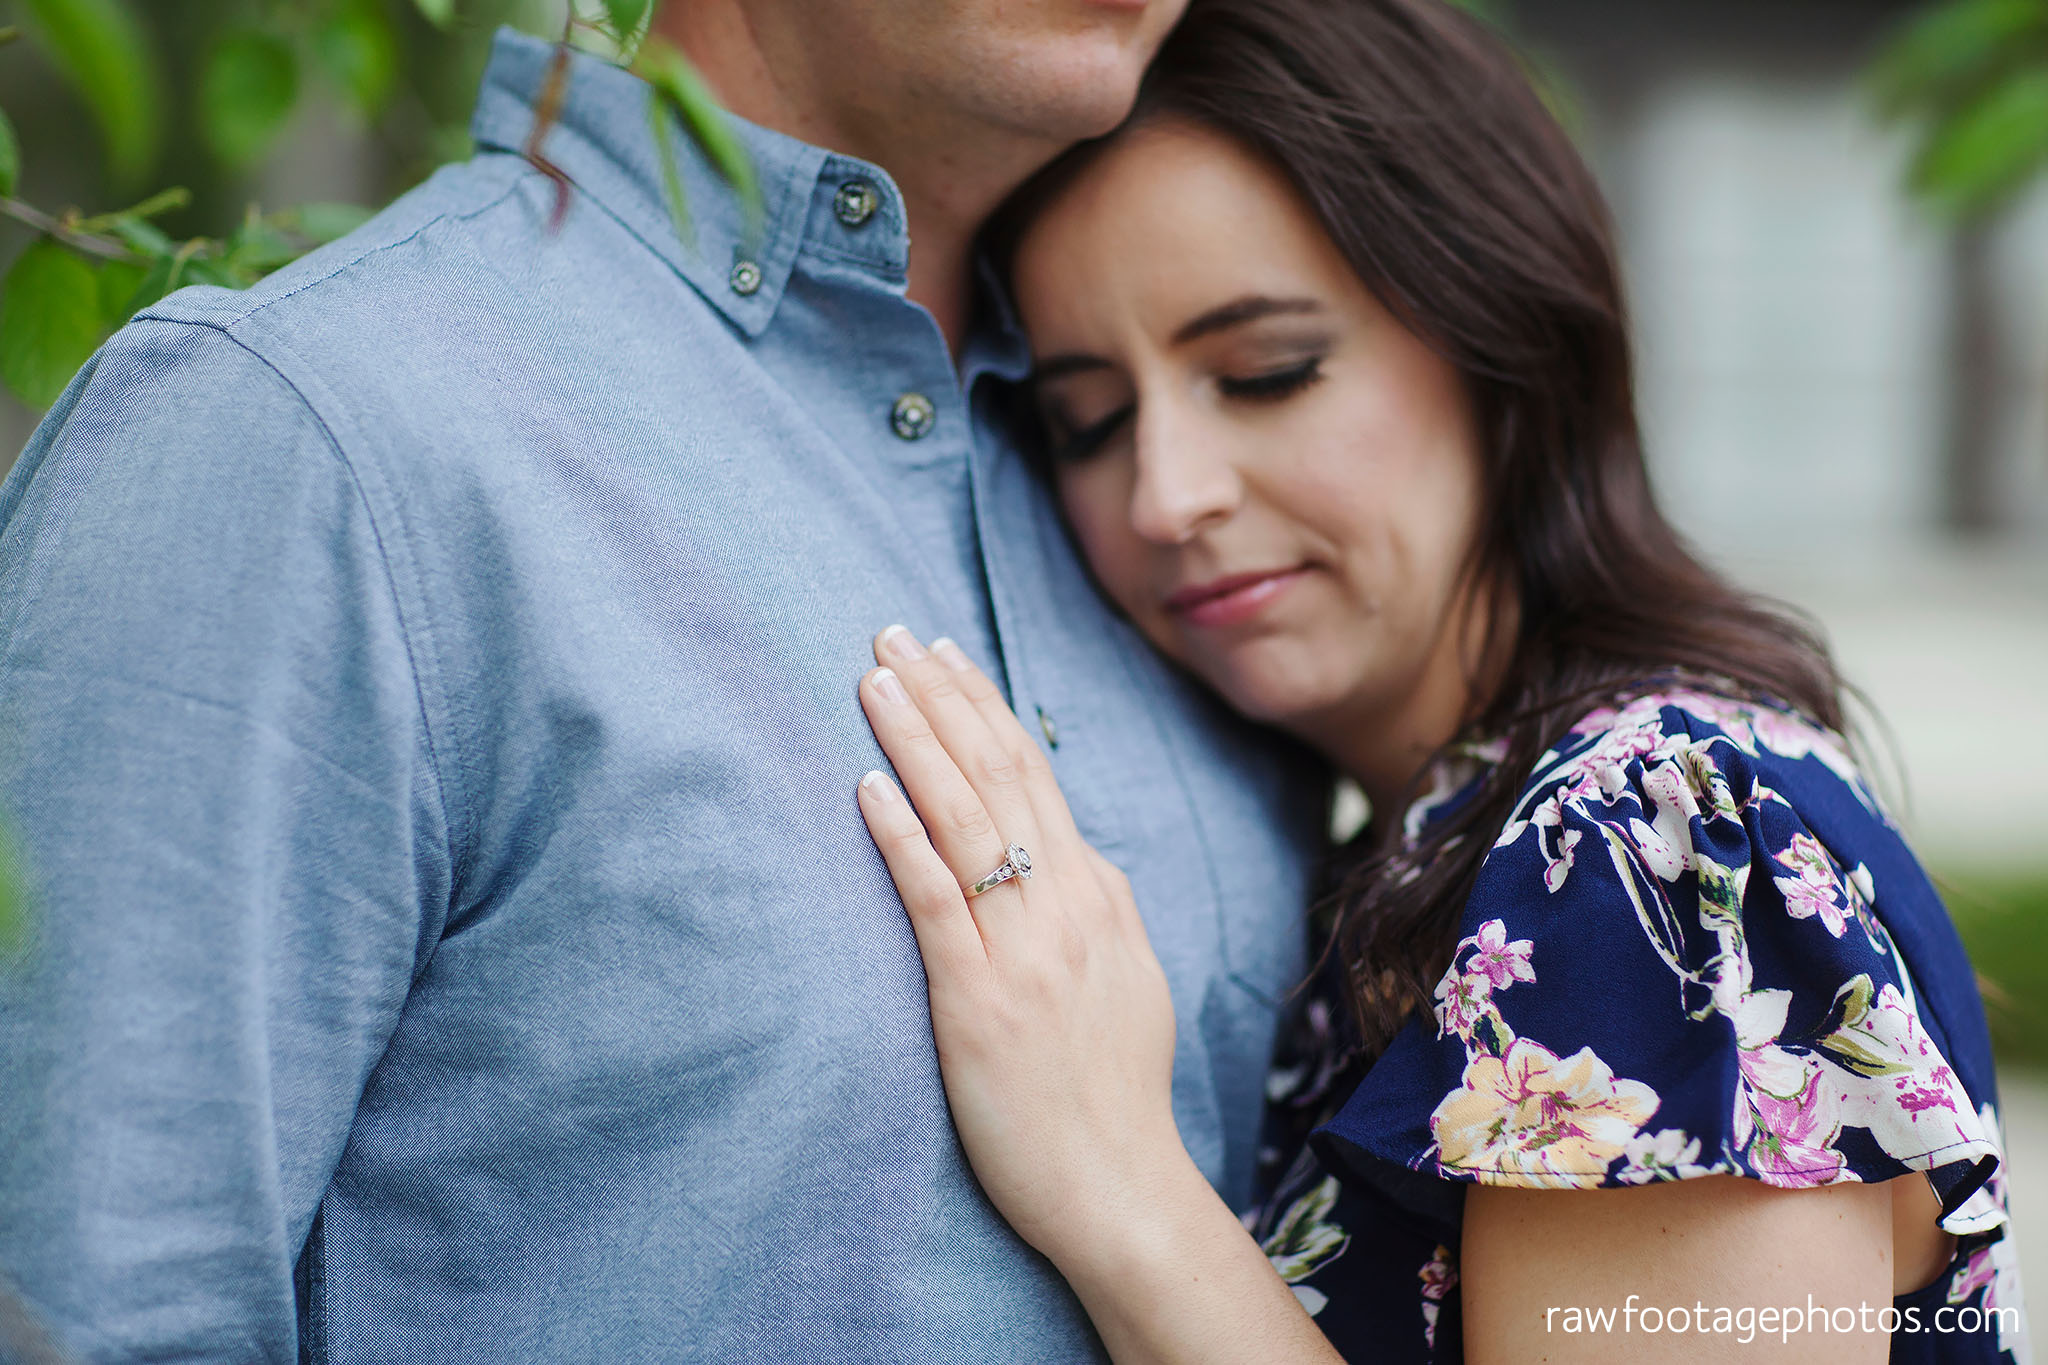 london_ontario_wedding_photographer-raw_footage_photography-engagement_session-campus_session-kings_college-uwo-spring_blooms021.jpg